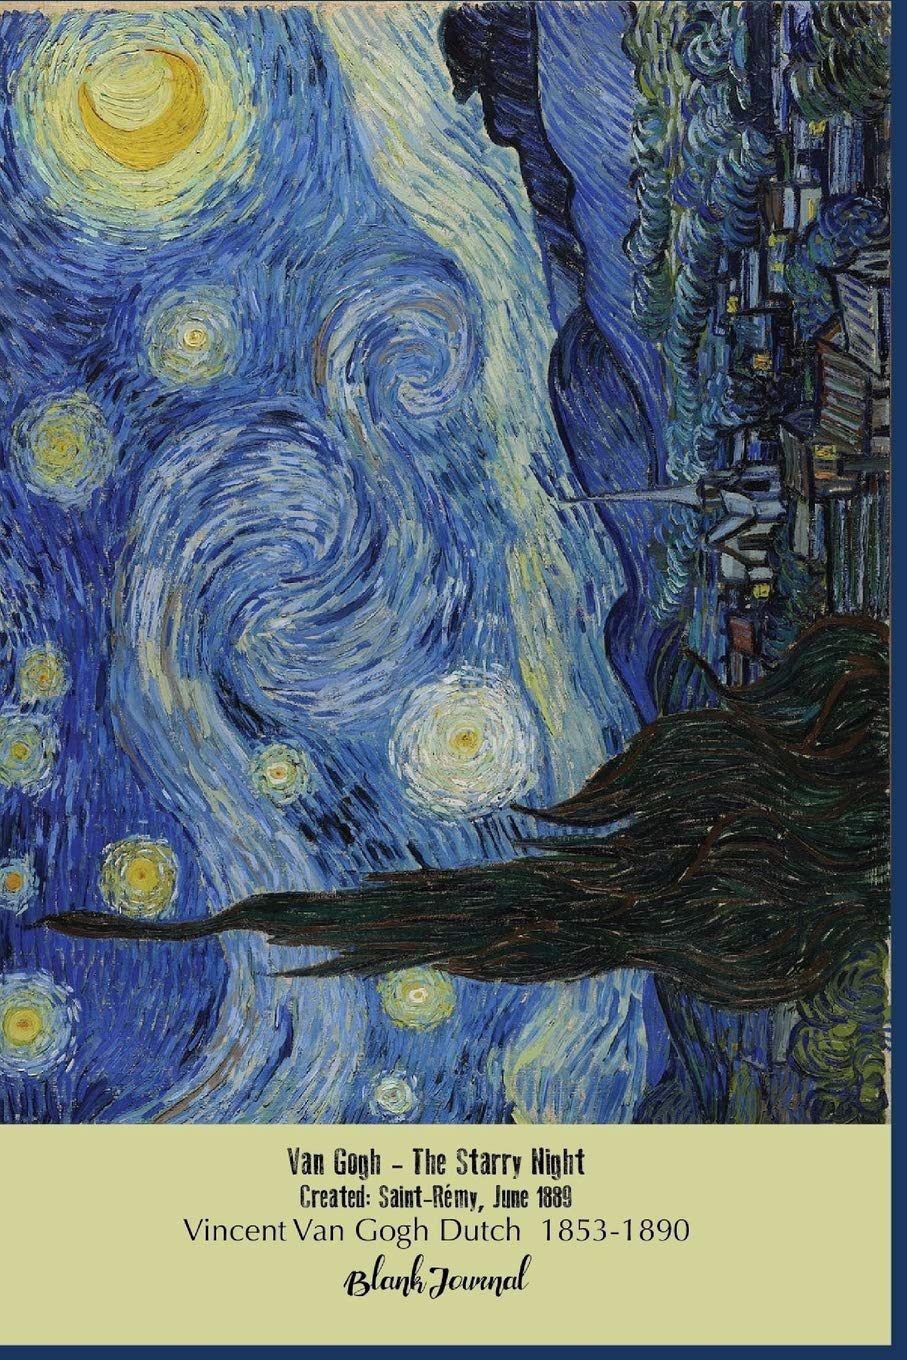 blank journal van gogh starry night blank unlined unruled 5 mm dot grid paperback notebook to write in for adults kids students teachers high vincent van gogh paintings volume 2